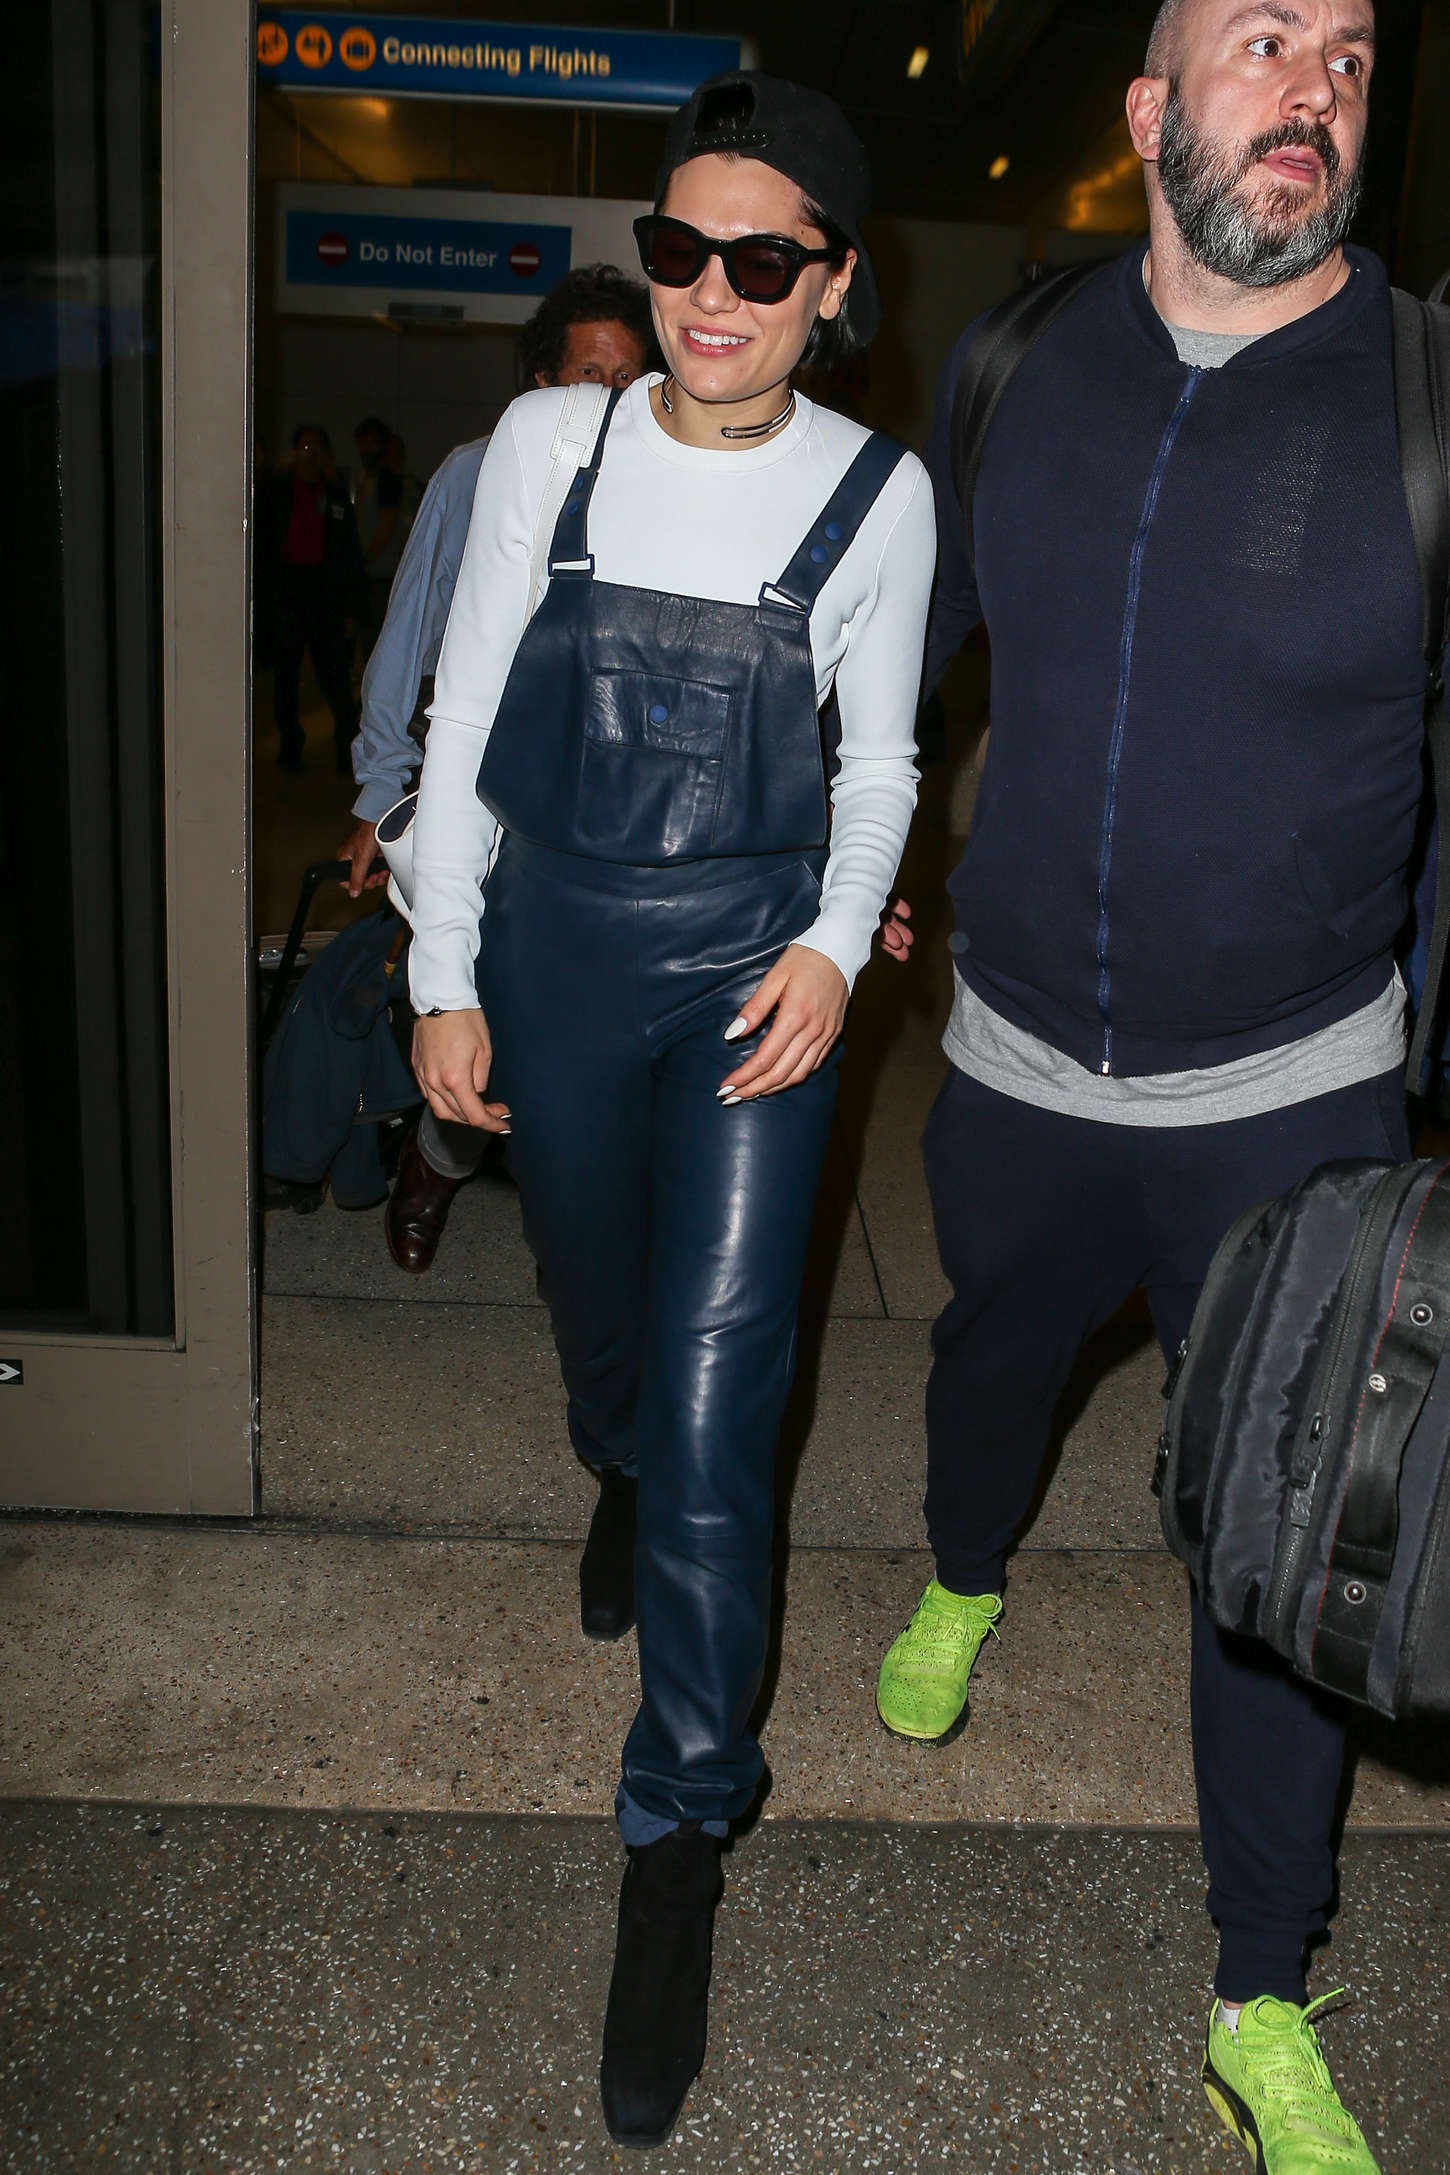 Jessie J arriving at LAX airport in Los Angeles